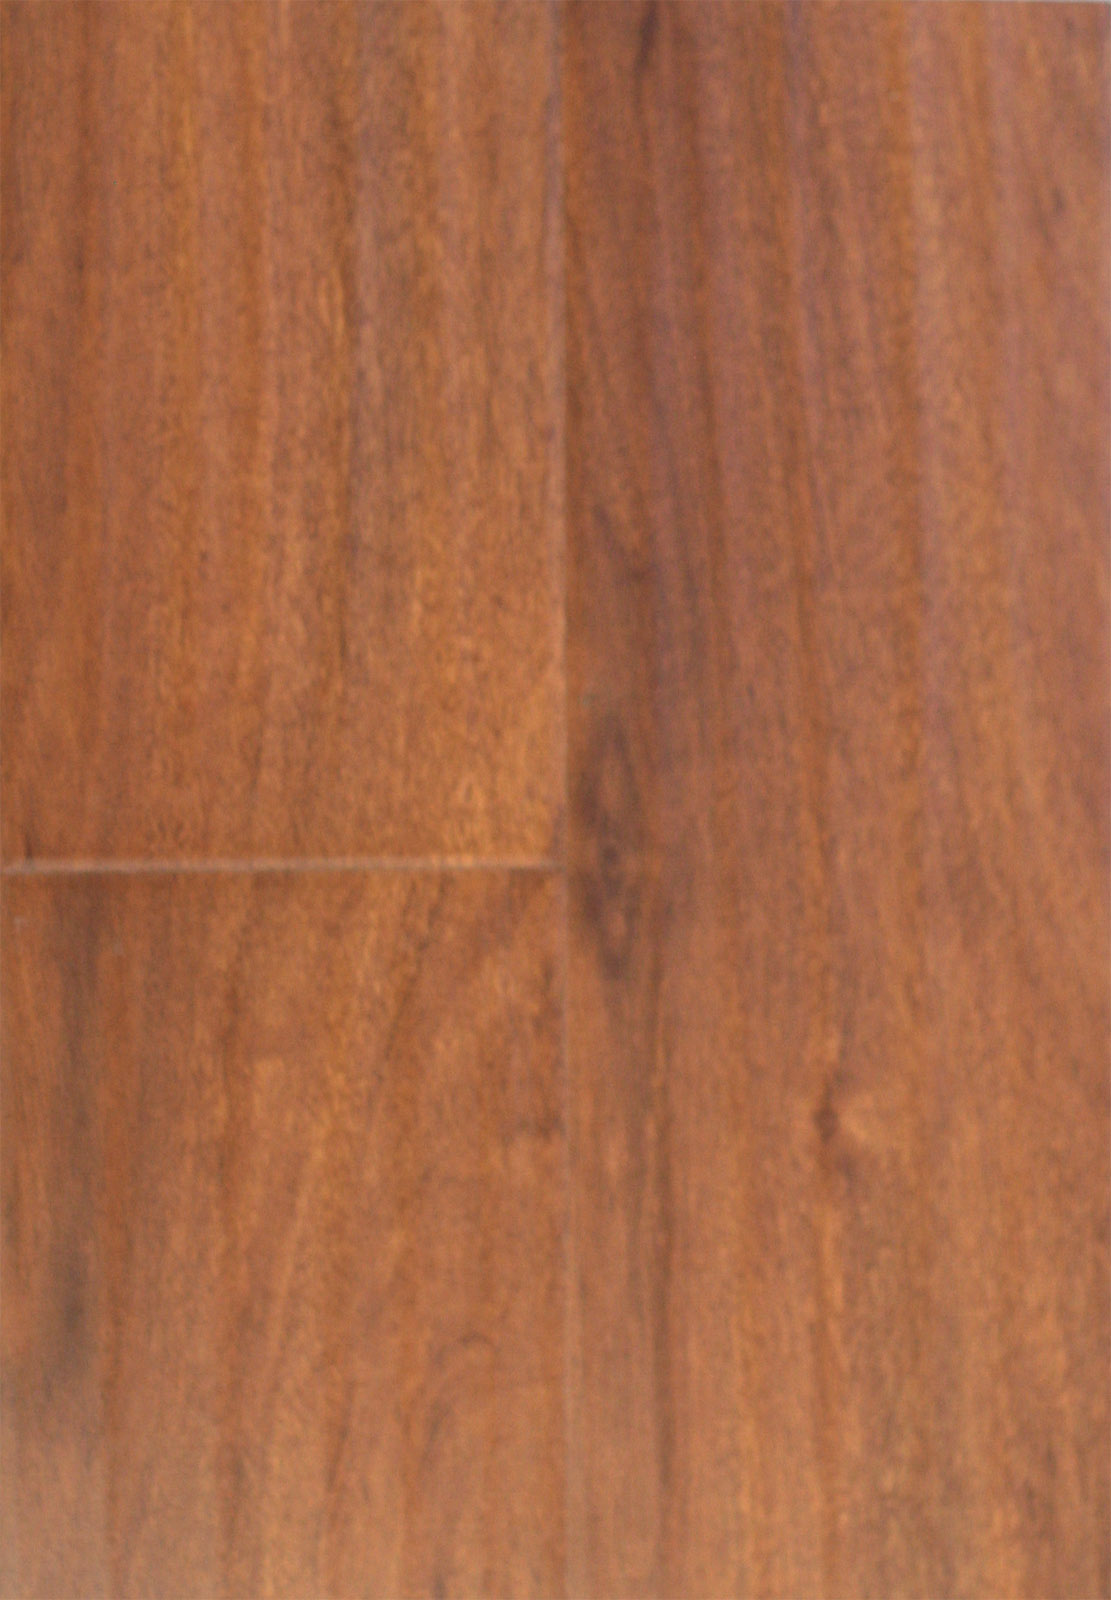 Laminate flooring brazilian cherry laminate flooring for Cherry laminate flooring